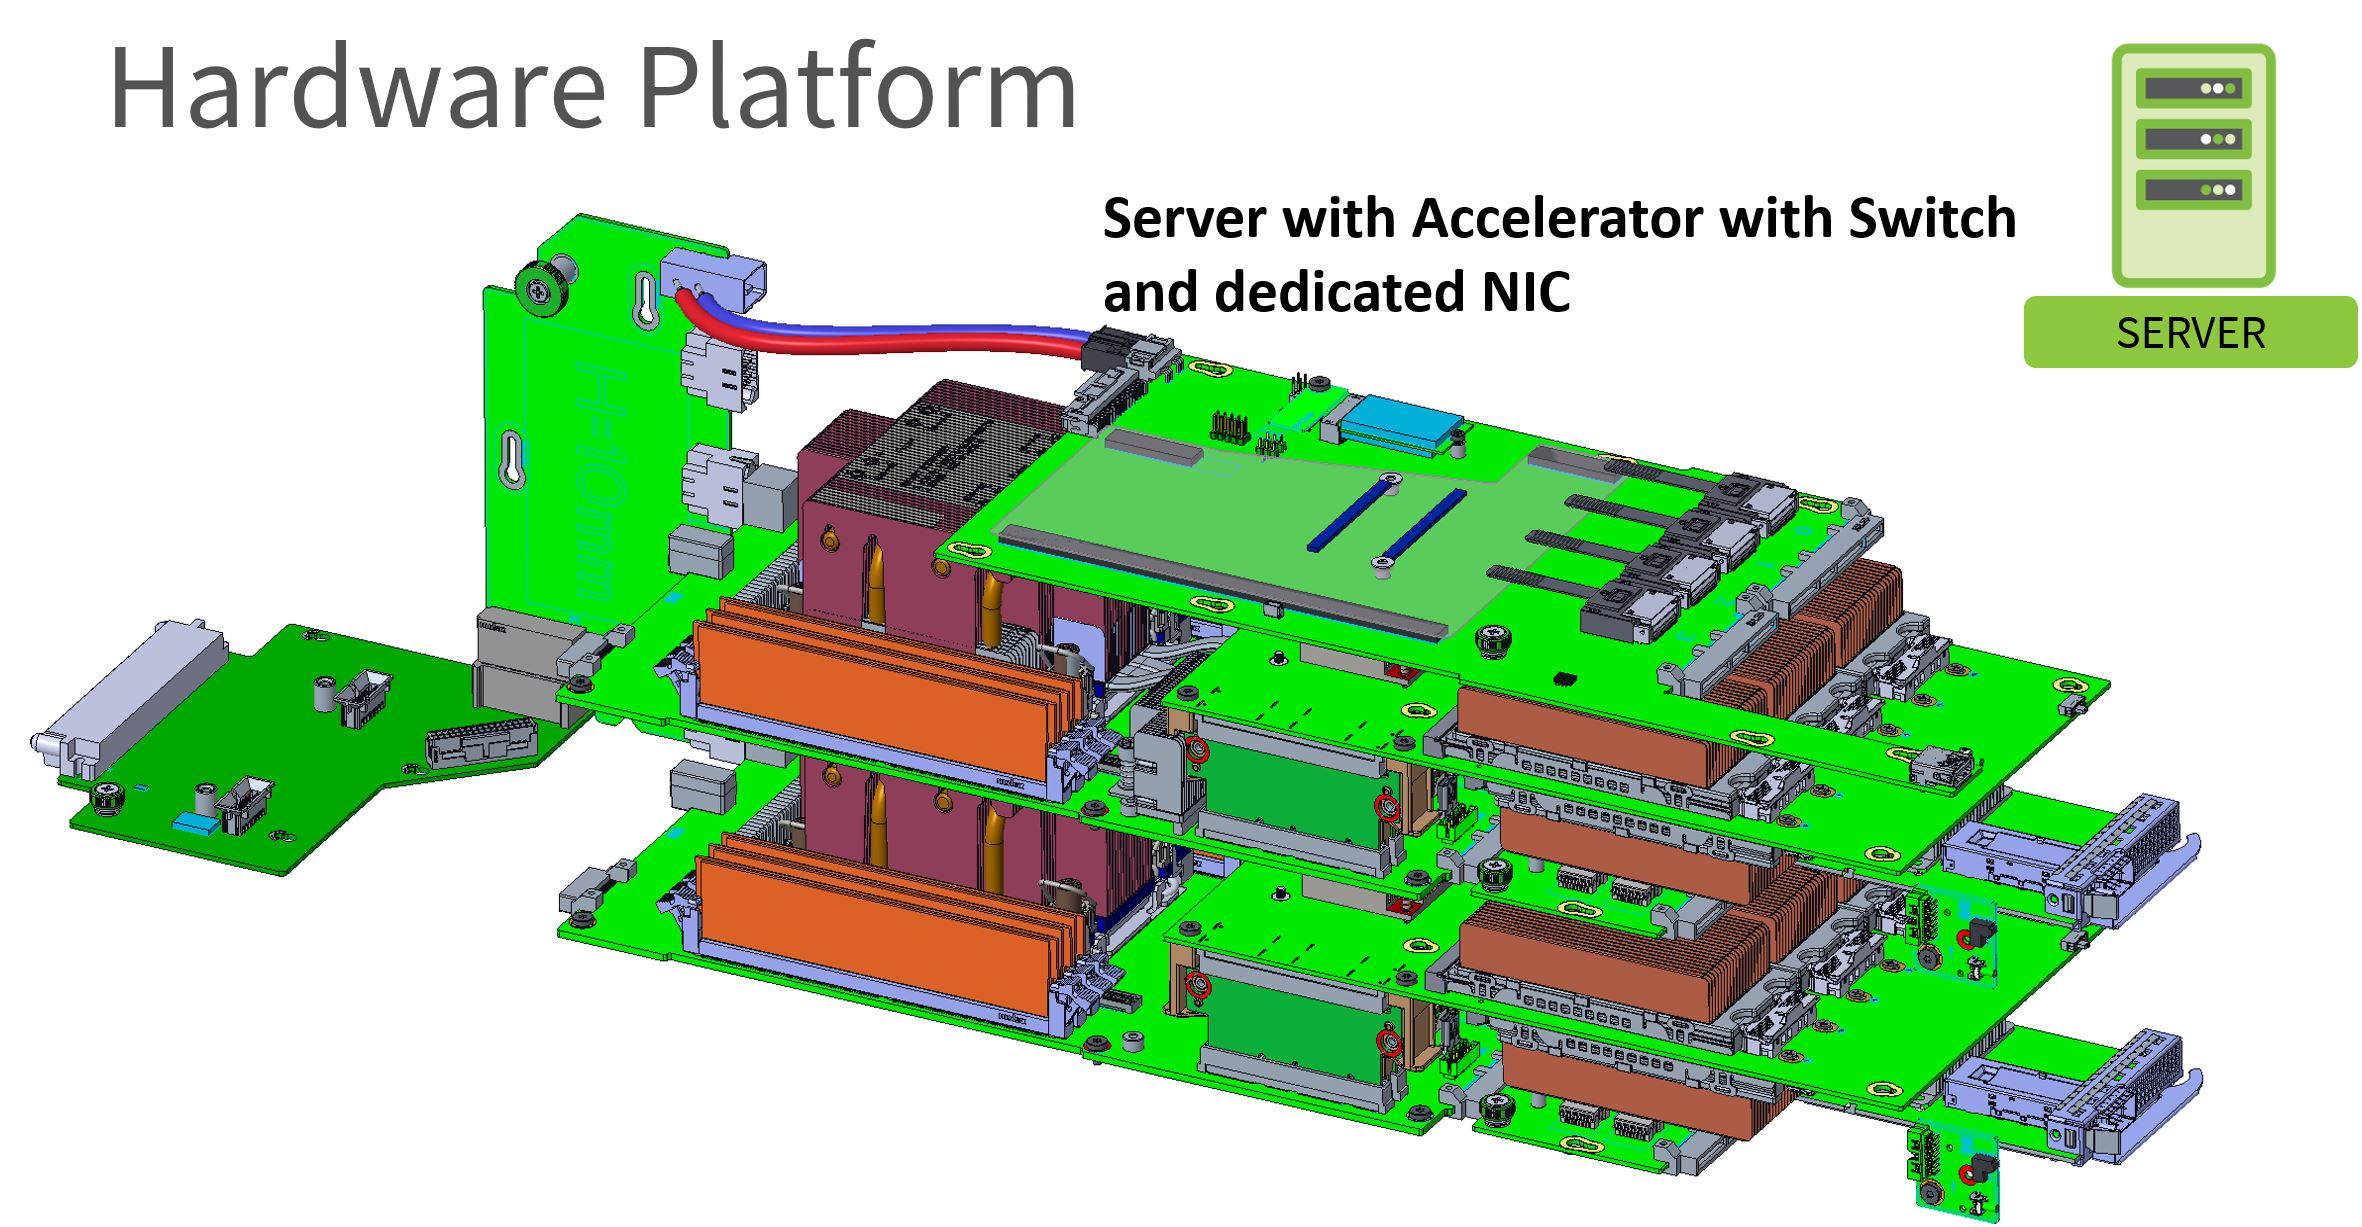 Facebook OCP Yosemite V3 Delta Lake Assembly Server With Accelerators 2OU Dedicated NIC